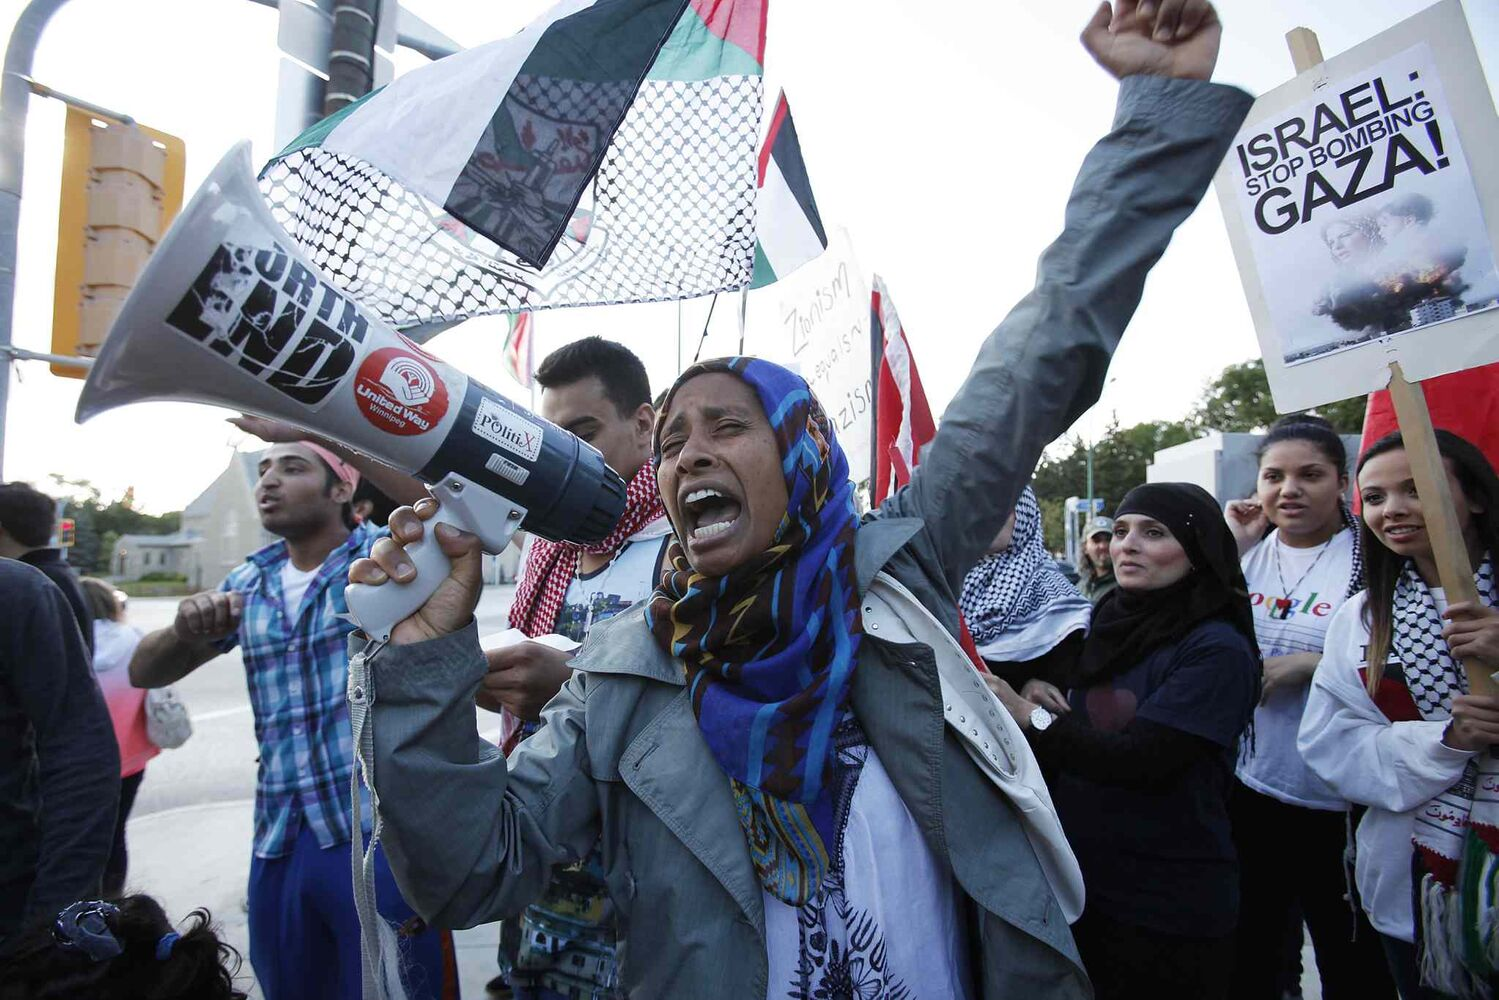 Palestinian supporters hold a peaceful rally at the Manitoba Legislature Monday.